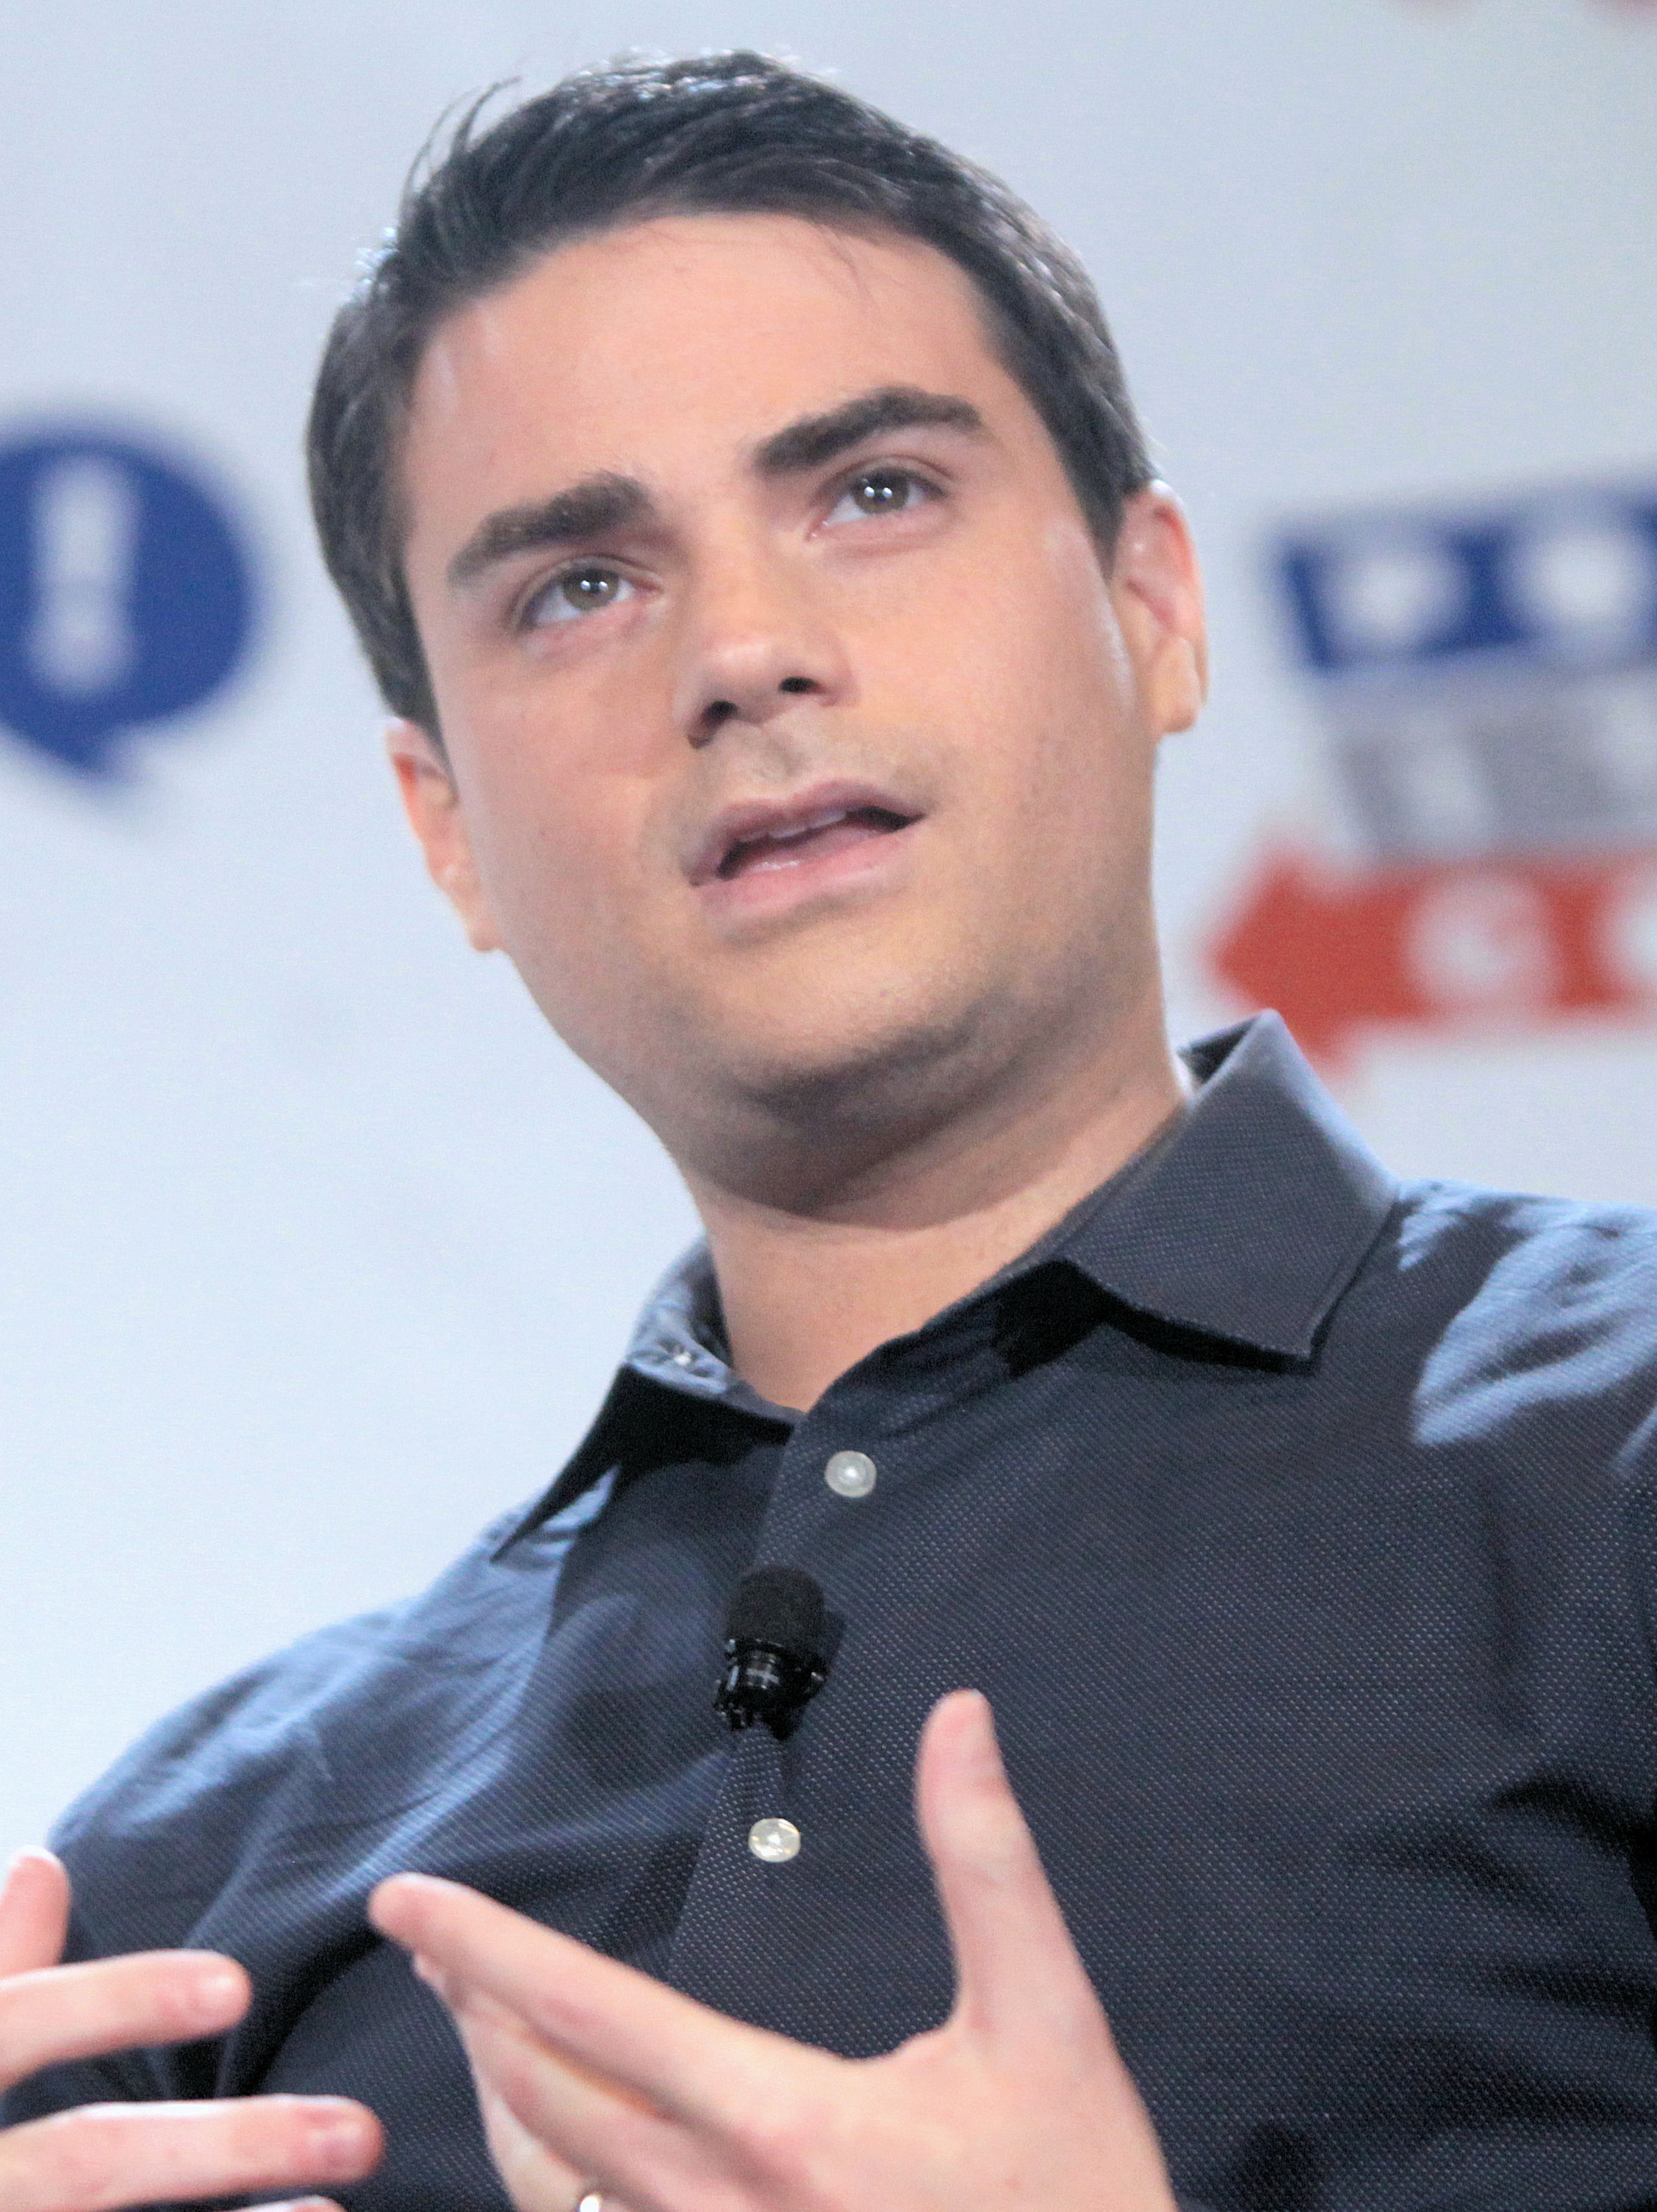 The 34-year old son of father (?) and mother(?) Ben Shapiro in 2018 photo. Ben Shapiro earned a  million dollar salary - leaving the net worth at 4 million in 2018